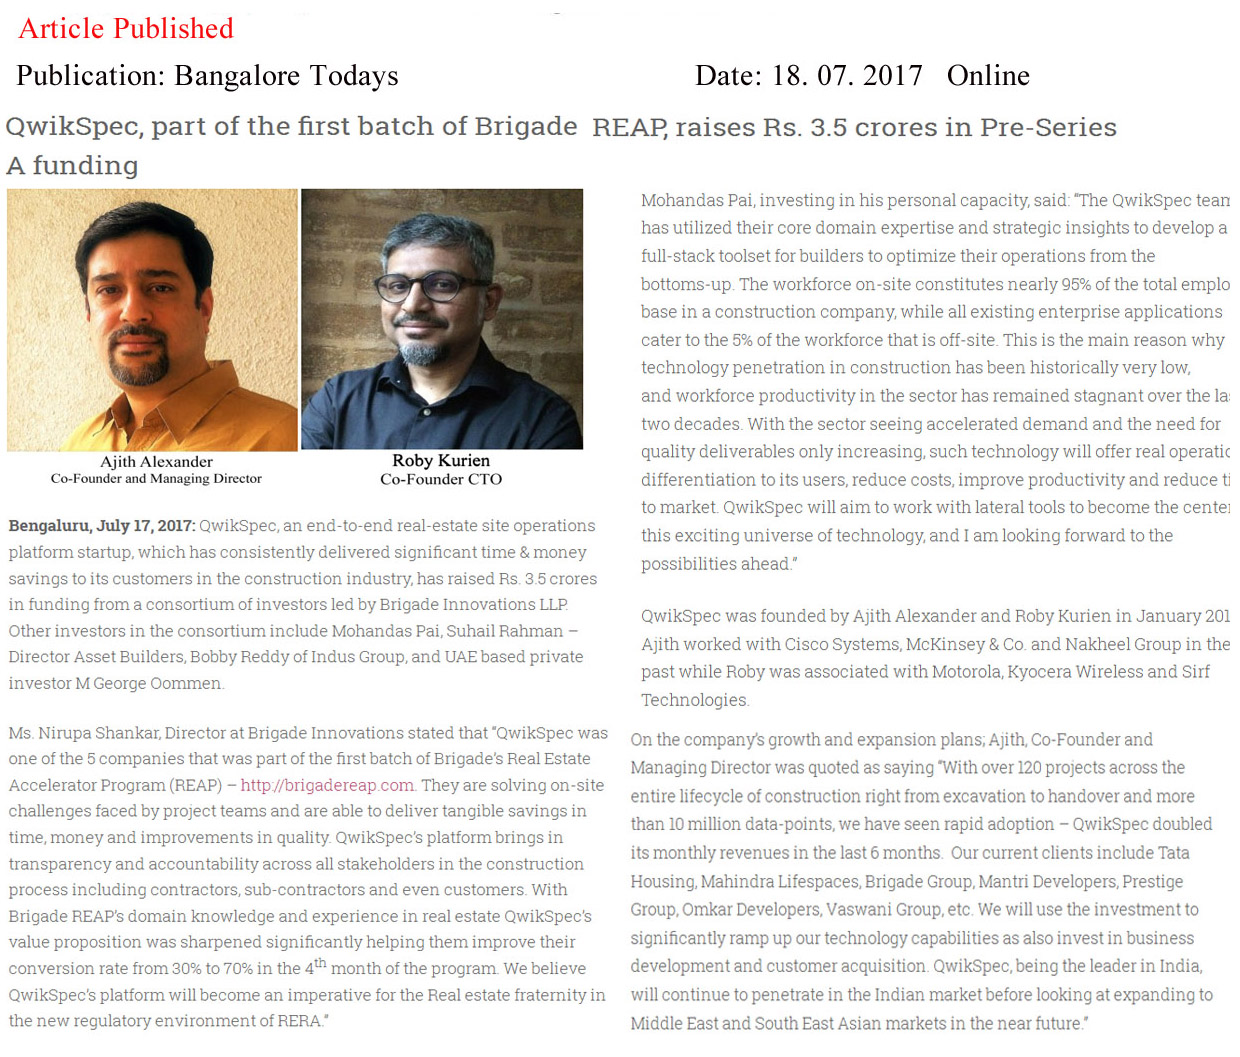 QwikSpec, raises Rs. 3.5 crores in Pre-Series A funding led by Brigade innovations—Bangalore Todays